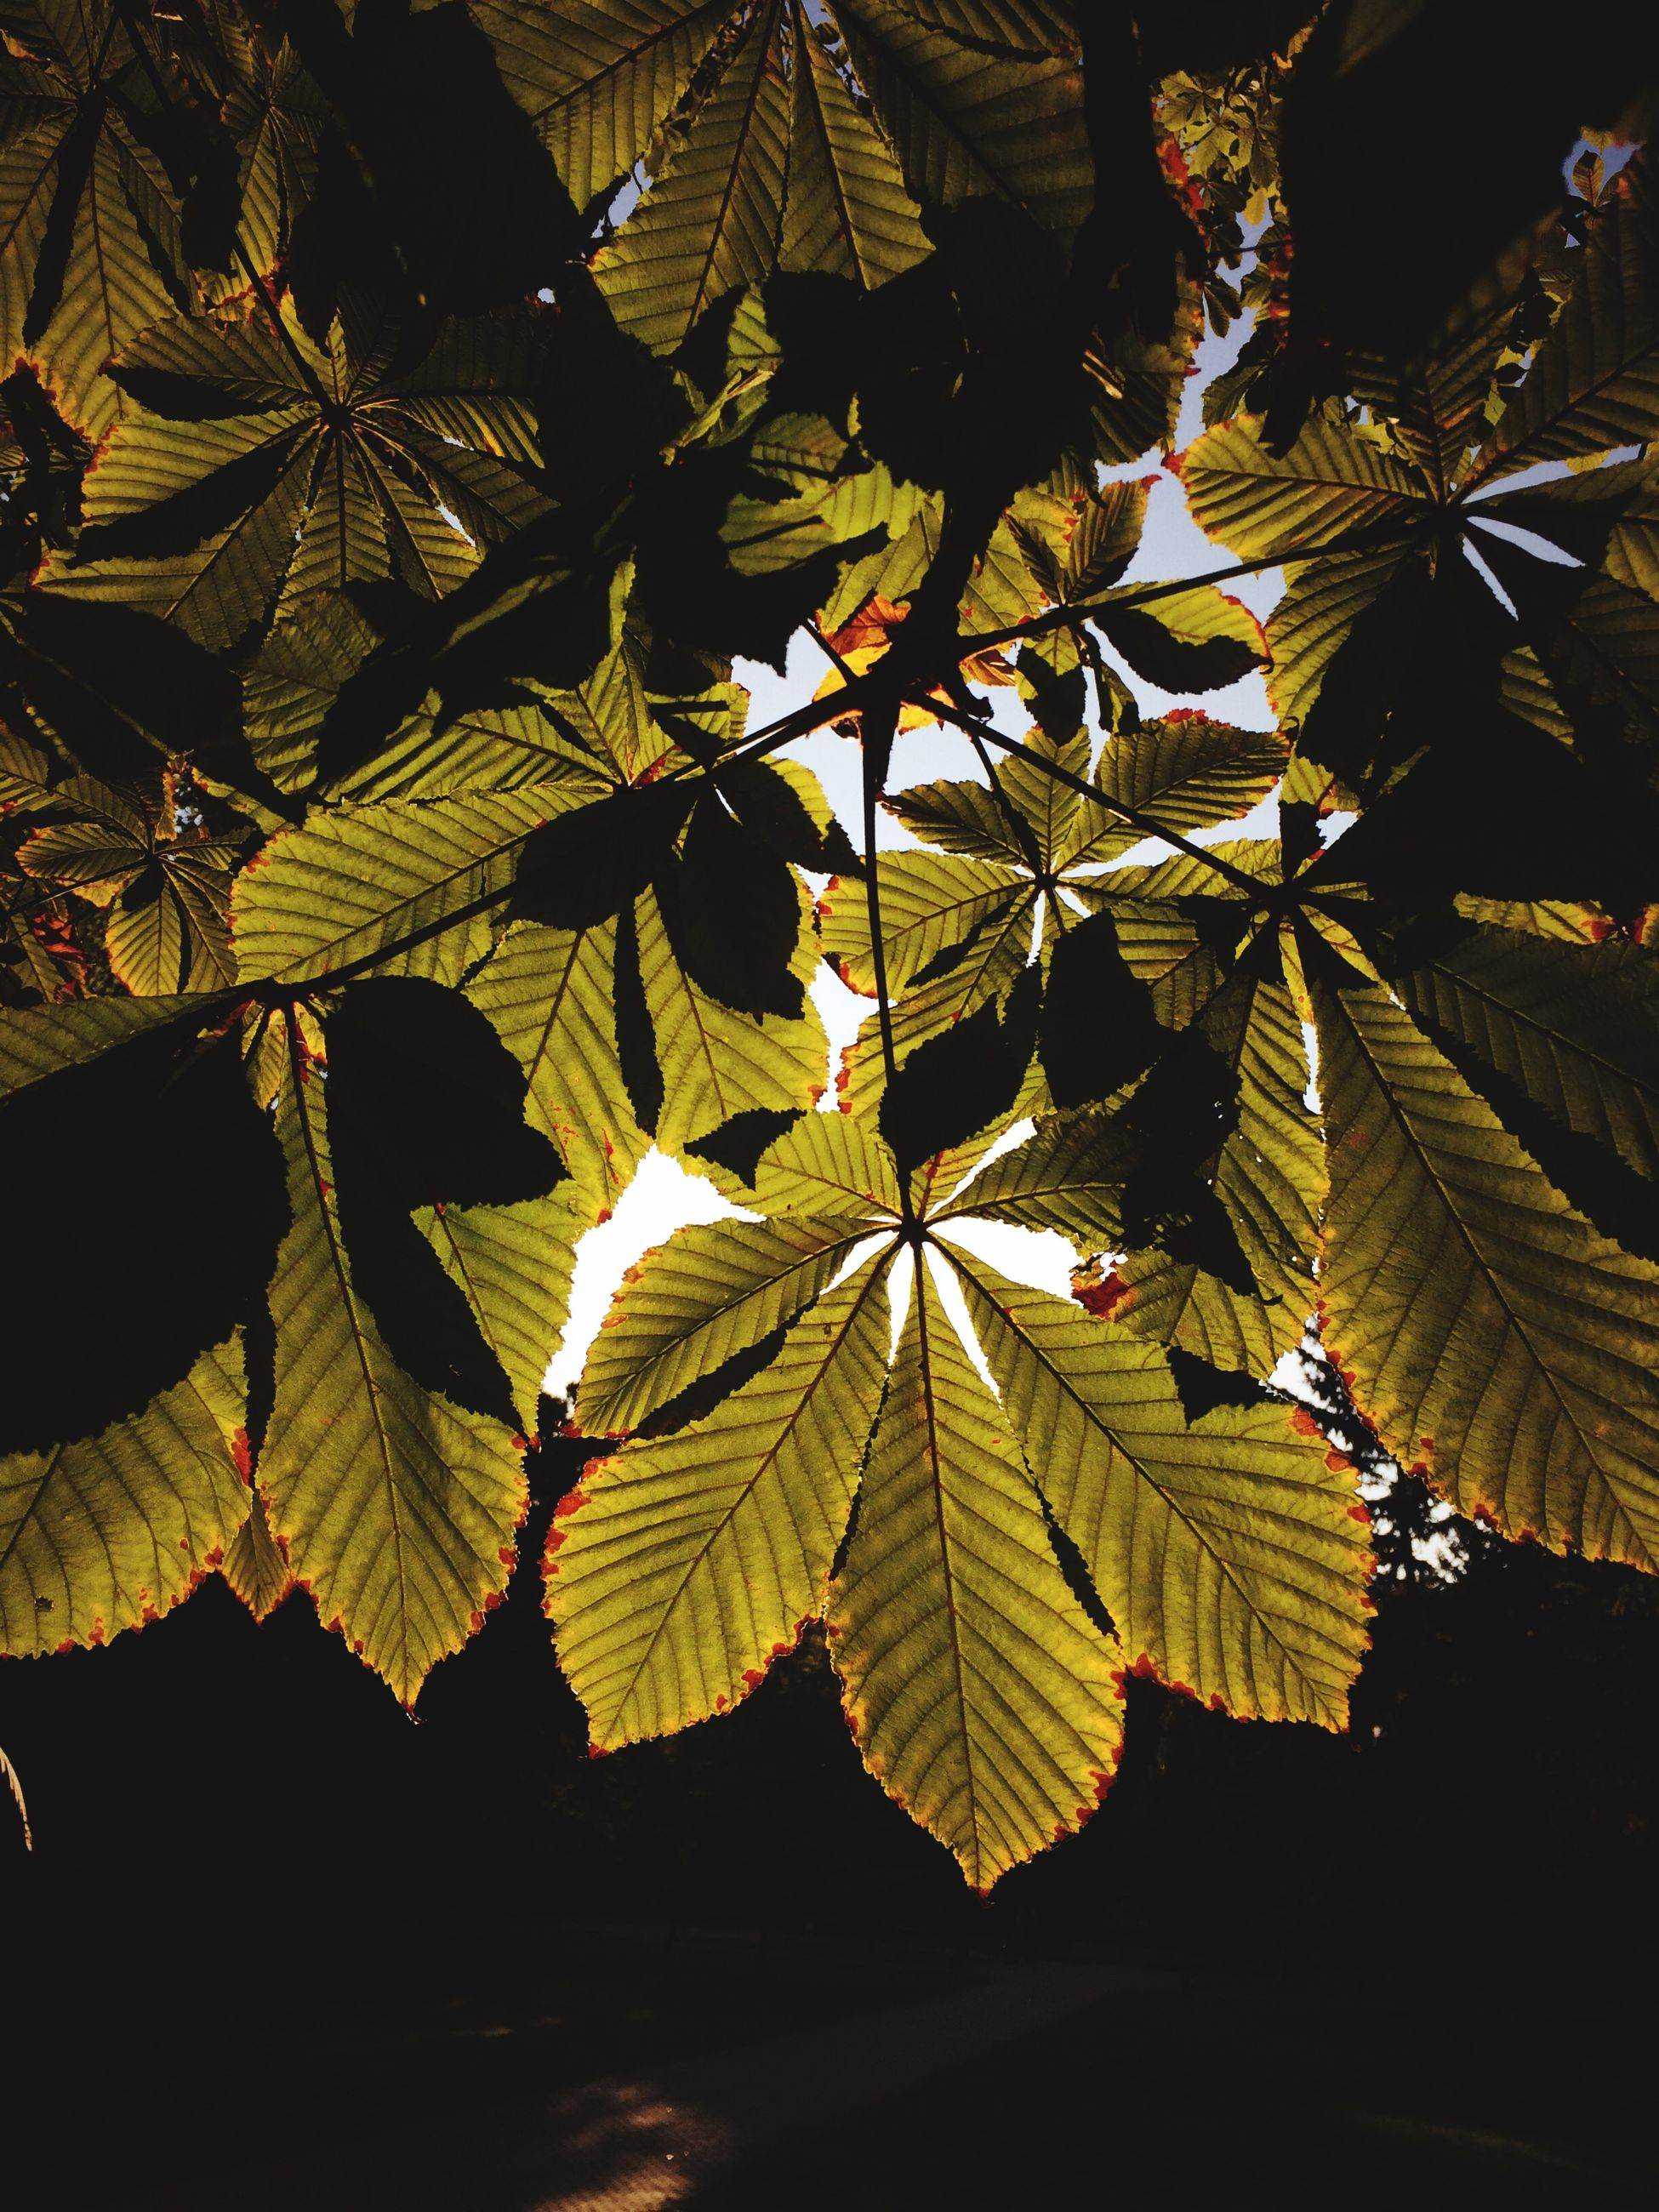 leaf, growth, leaf vein, nature, leaves, branch, tree, close-up, green color, plant, beauty in nature, sunlight, tranquility, natural pattern, no people, low angle view, outdoors, focus on foreground, day, silhouette